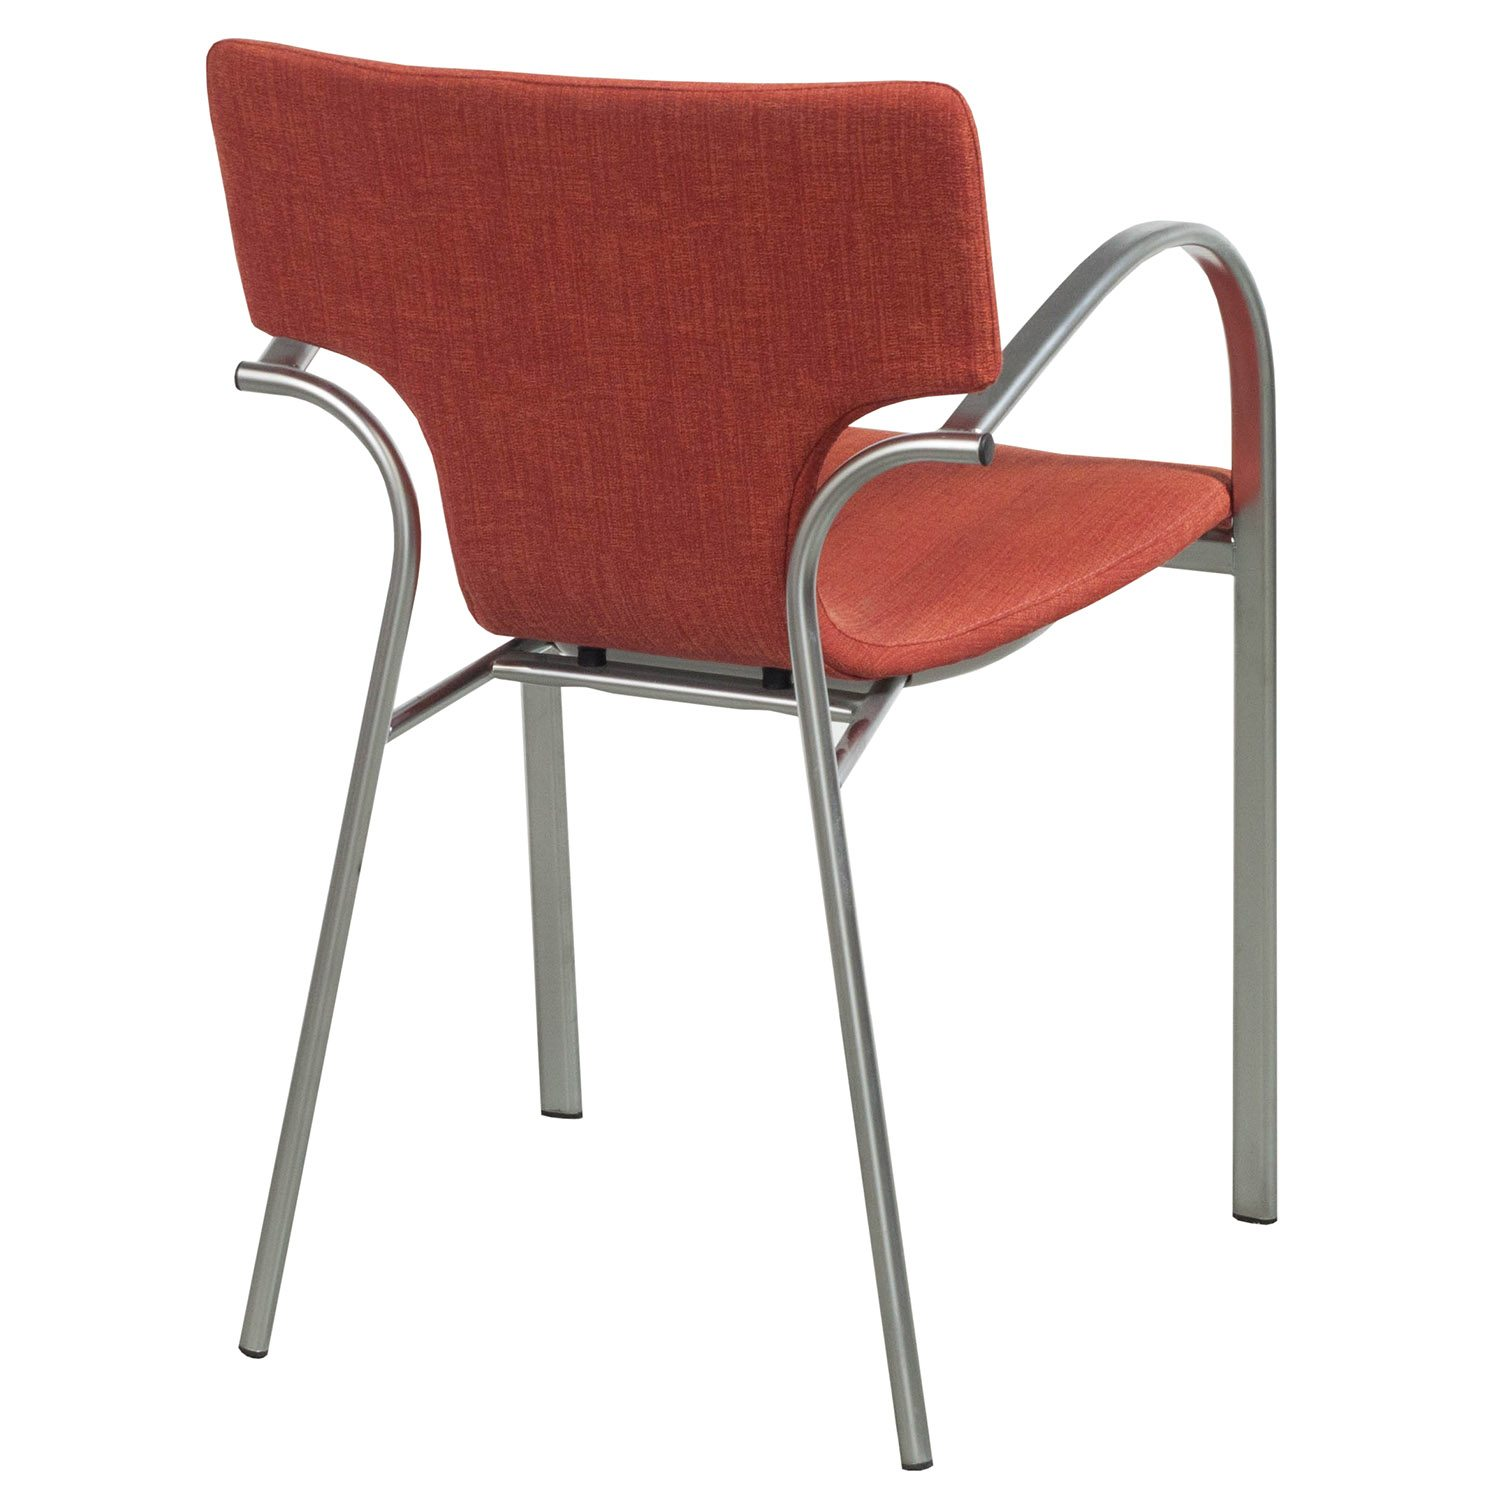 orange stackable chairs chair covers for sale south africa bernhardt strada used stack national